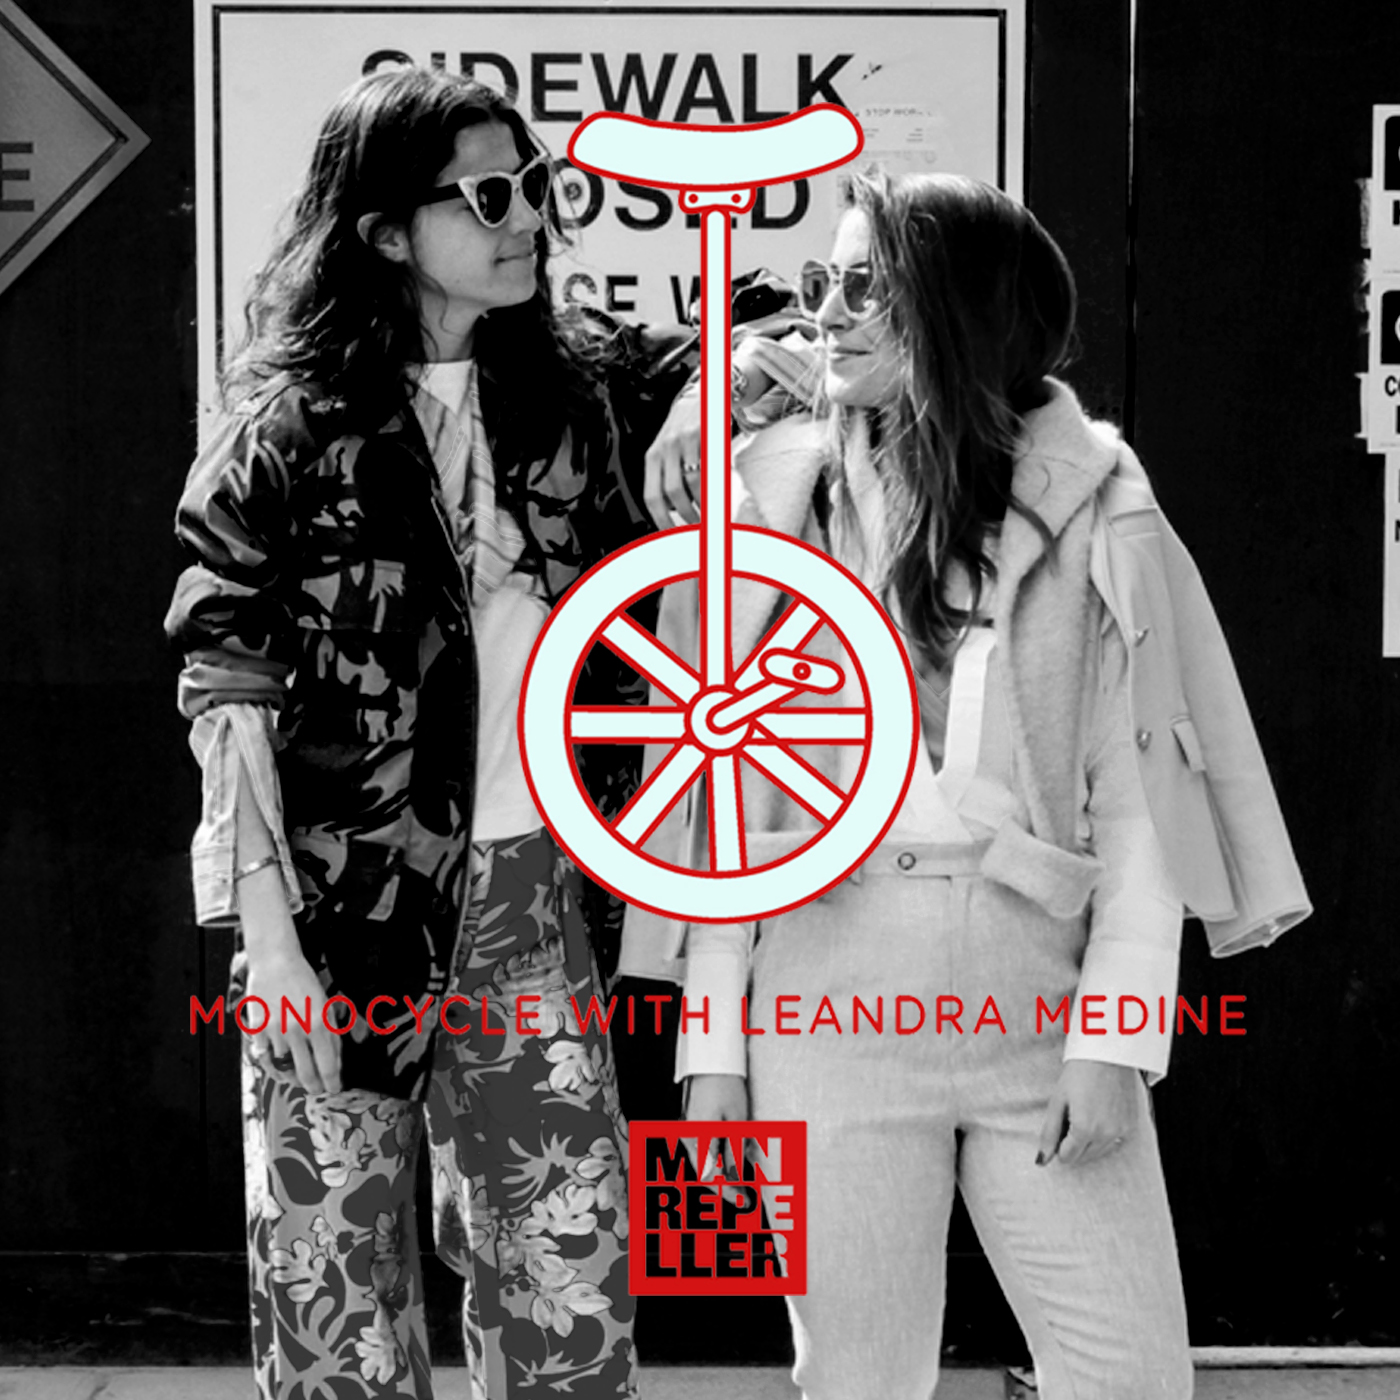 Monocycle-Working-With-Your-Best-Friend-BFF-Careers-Podcast-Leandra-Medine-Founder-Amelia-Diamond-June-2017-Man-Repeller-Feature.jpg